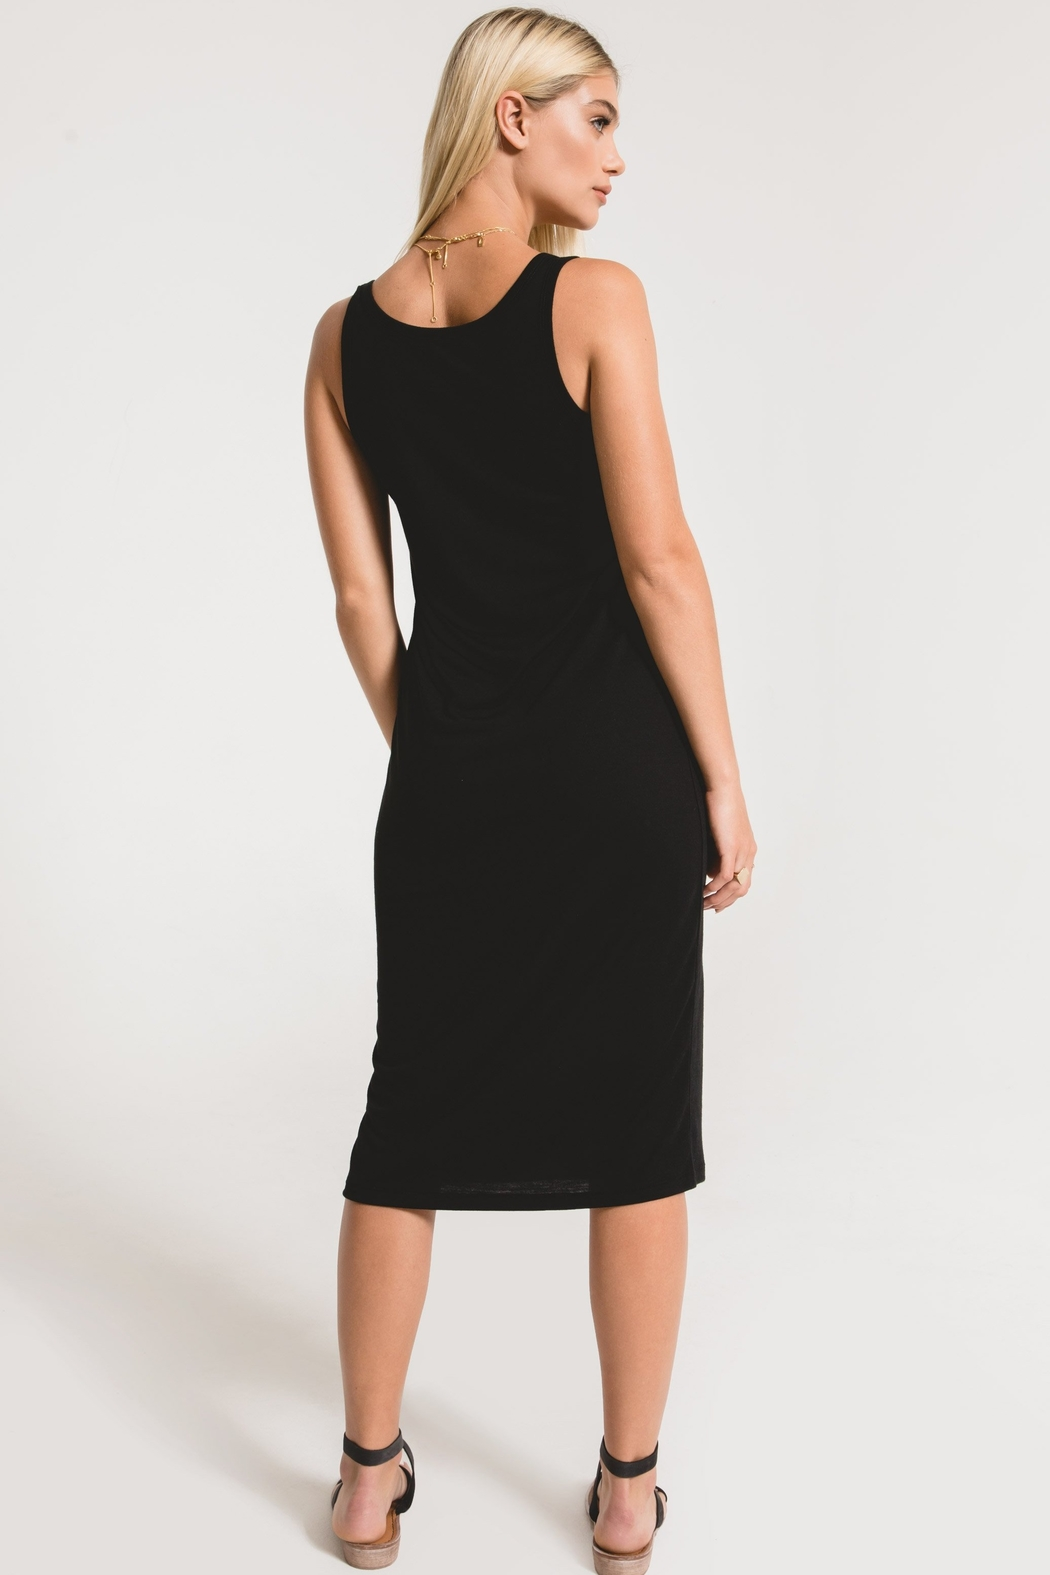 z supply The Meridian Dress - Side Cropped Image